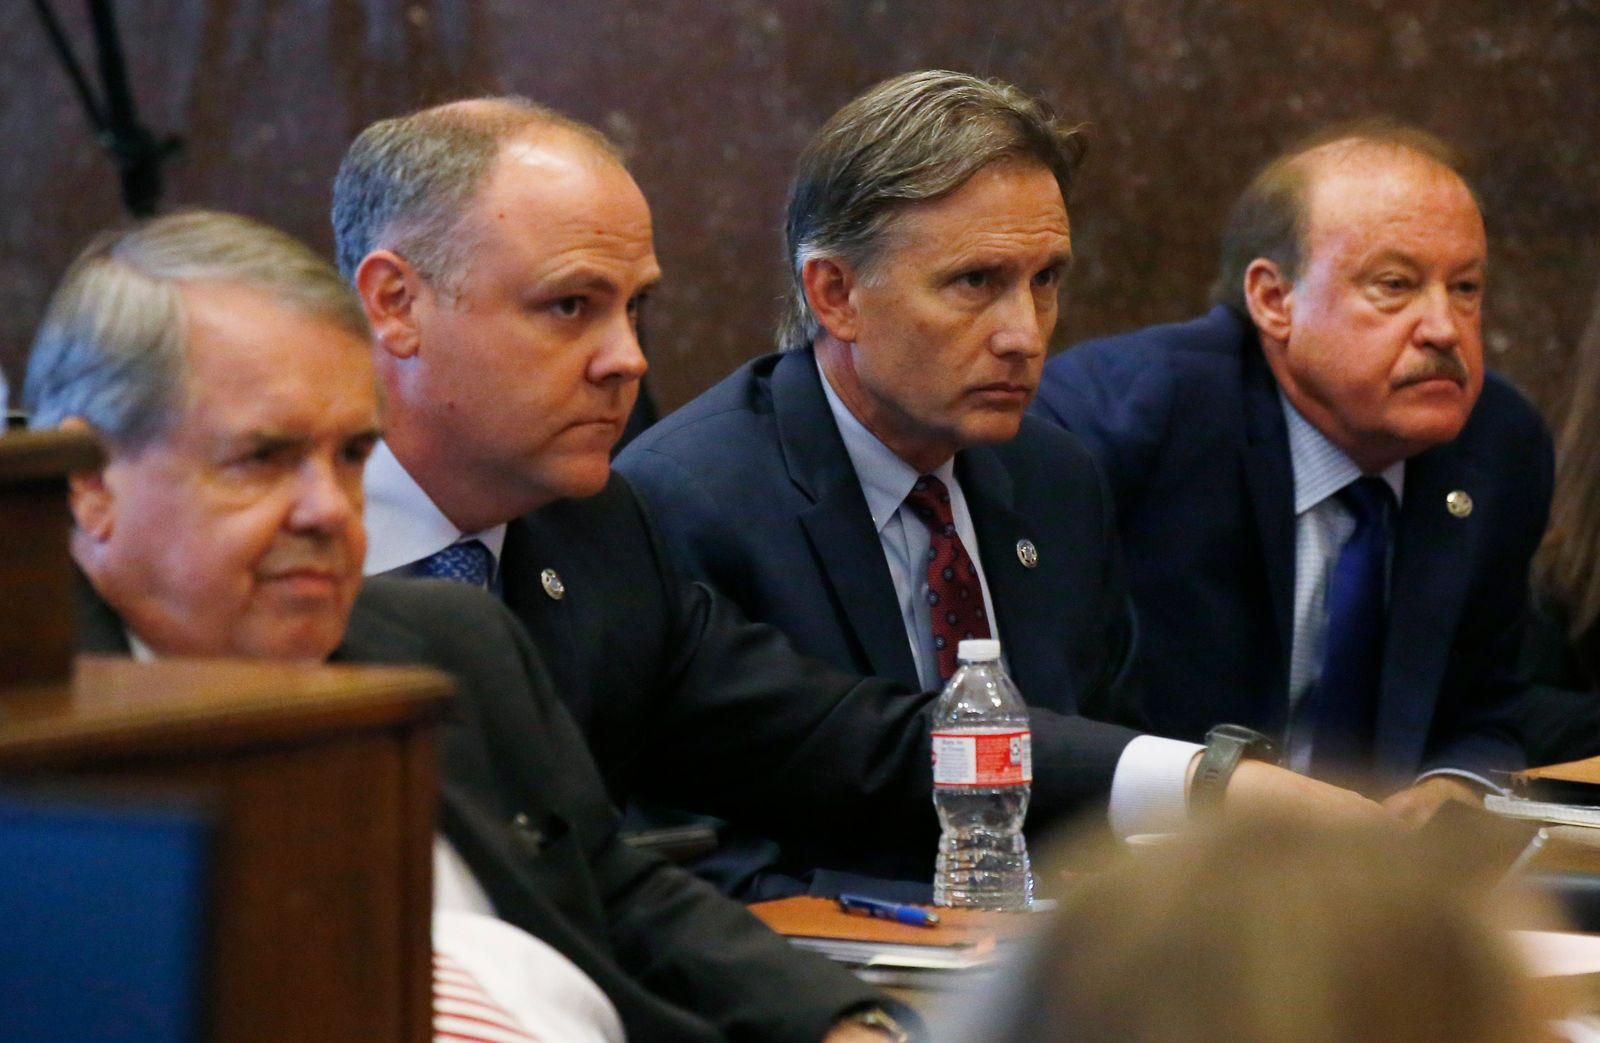 Oklahoma Attorney General Mike Hunter, second from right, listens with members of his team as the judge speaks following closing arguments in Oklahoma's ongoing opioid drug lawsuit against Johnson & Johnson, Monday, July 15, 2019, in Norman, Okla. From left are Michael Burrage, Brad Beckworth, Hunter and Reggie Whitten. (AP Photo/Sue Ogrocki, Pool)